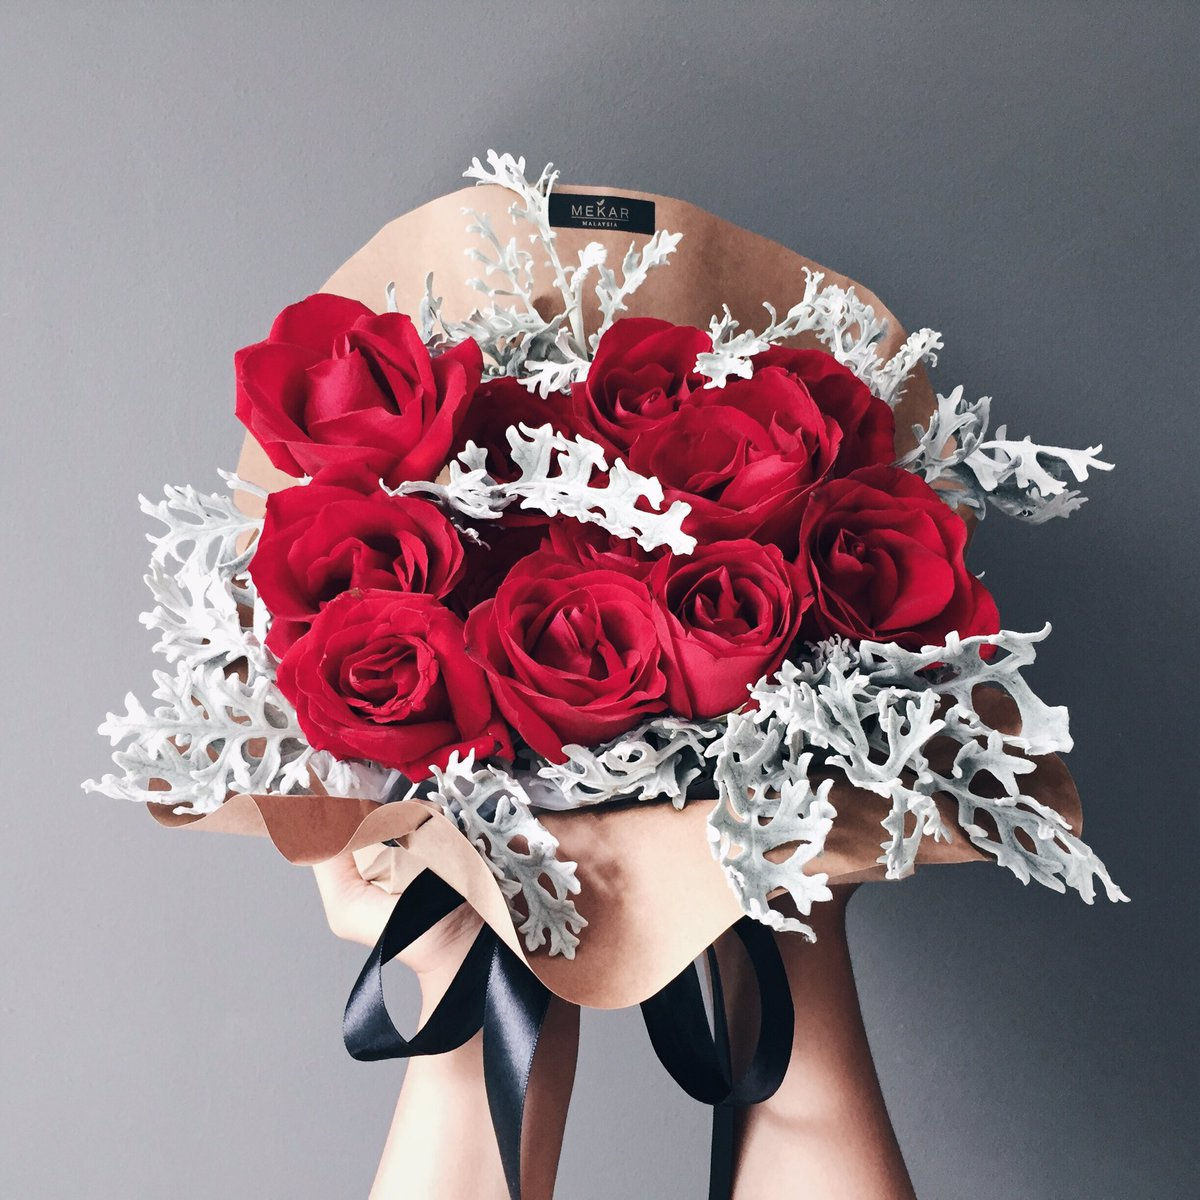 Mekar on twitter valentines day is a great day to suprise your my on twitter valentines day is a great day to suprise your love ones with a beautiful flower bouquet cause theres no way theyll be expecting it on izmirmasajfo